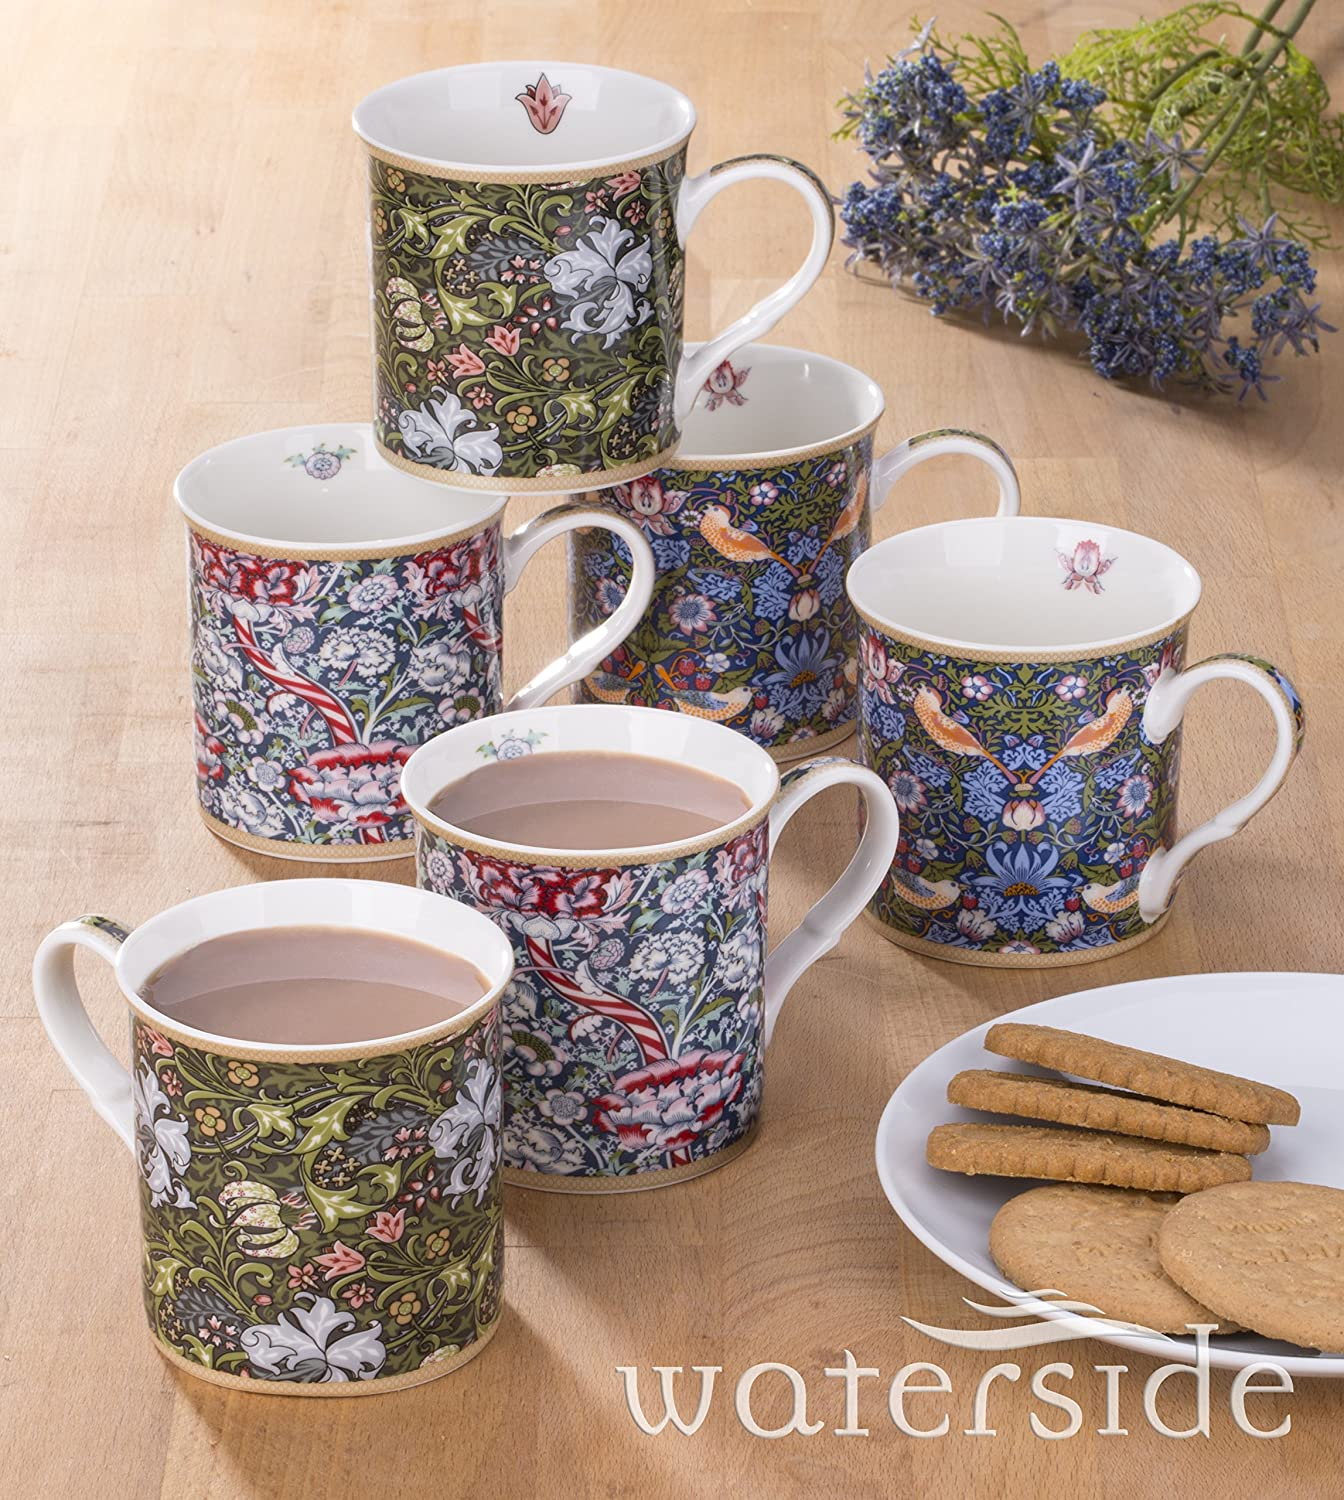 6 Piece William Morris Fine China Mug Set Waterside Fine China